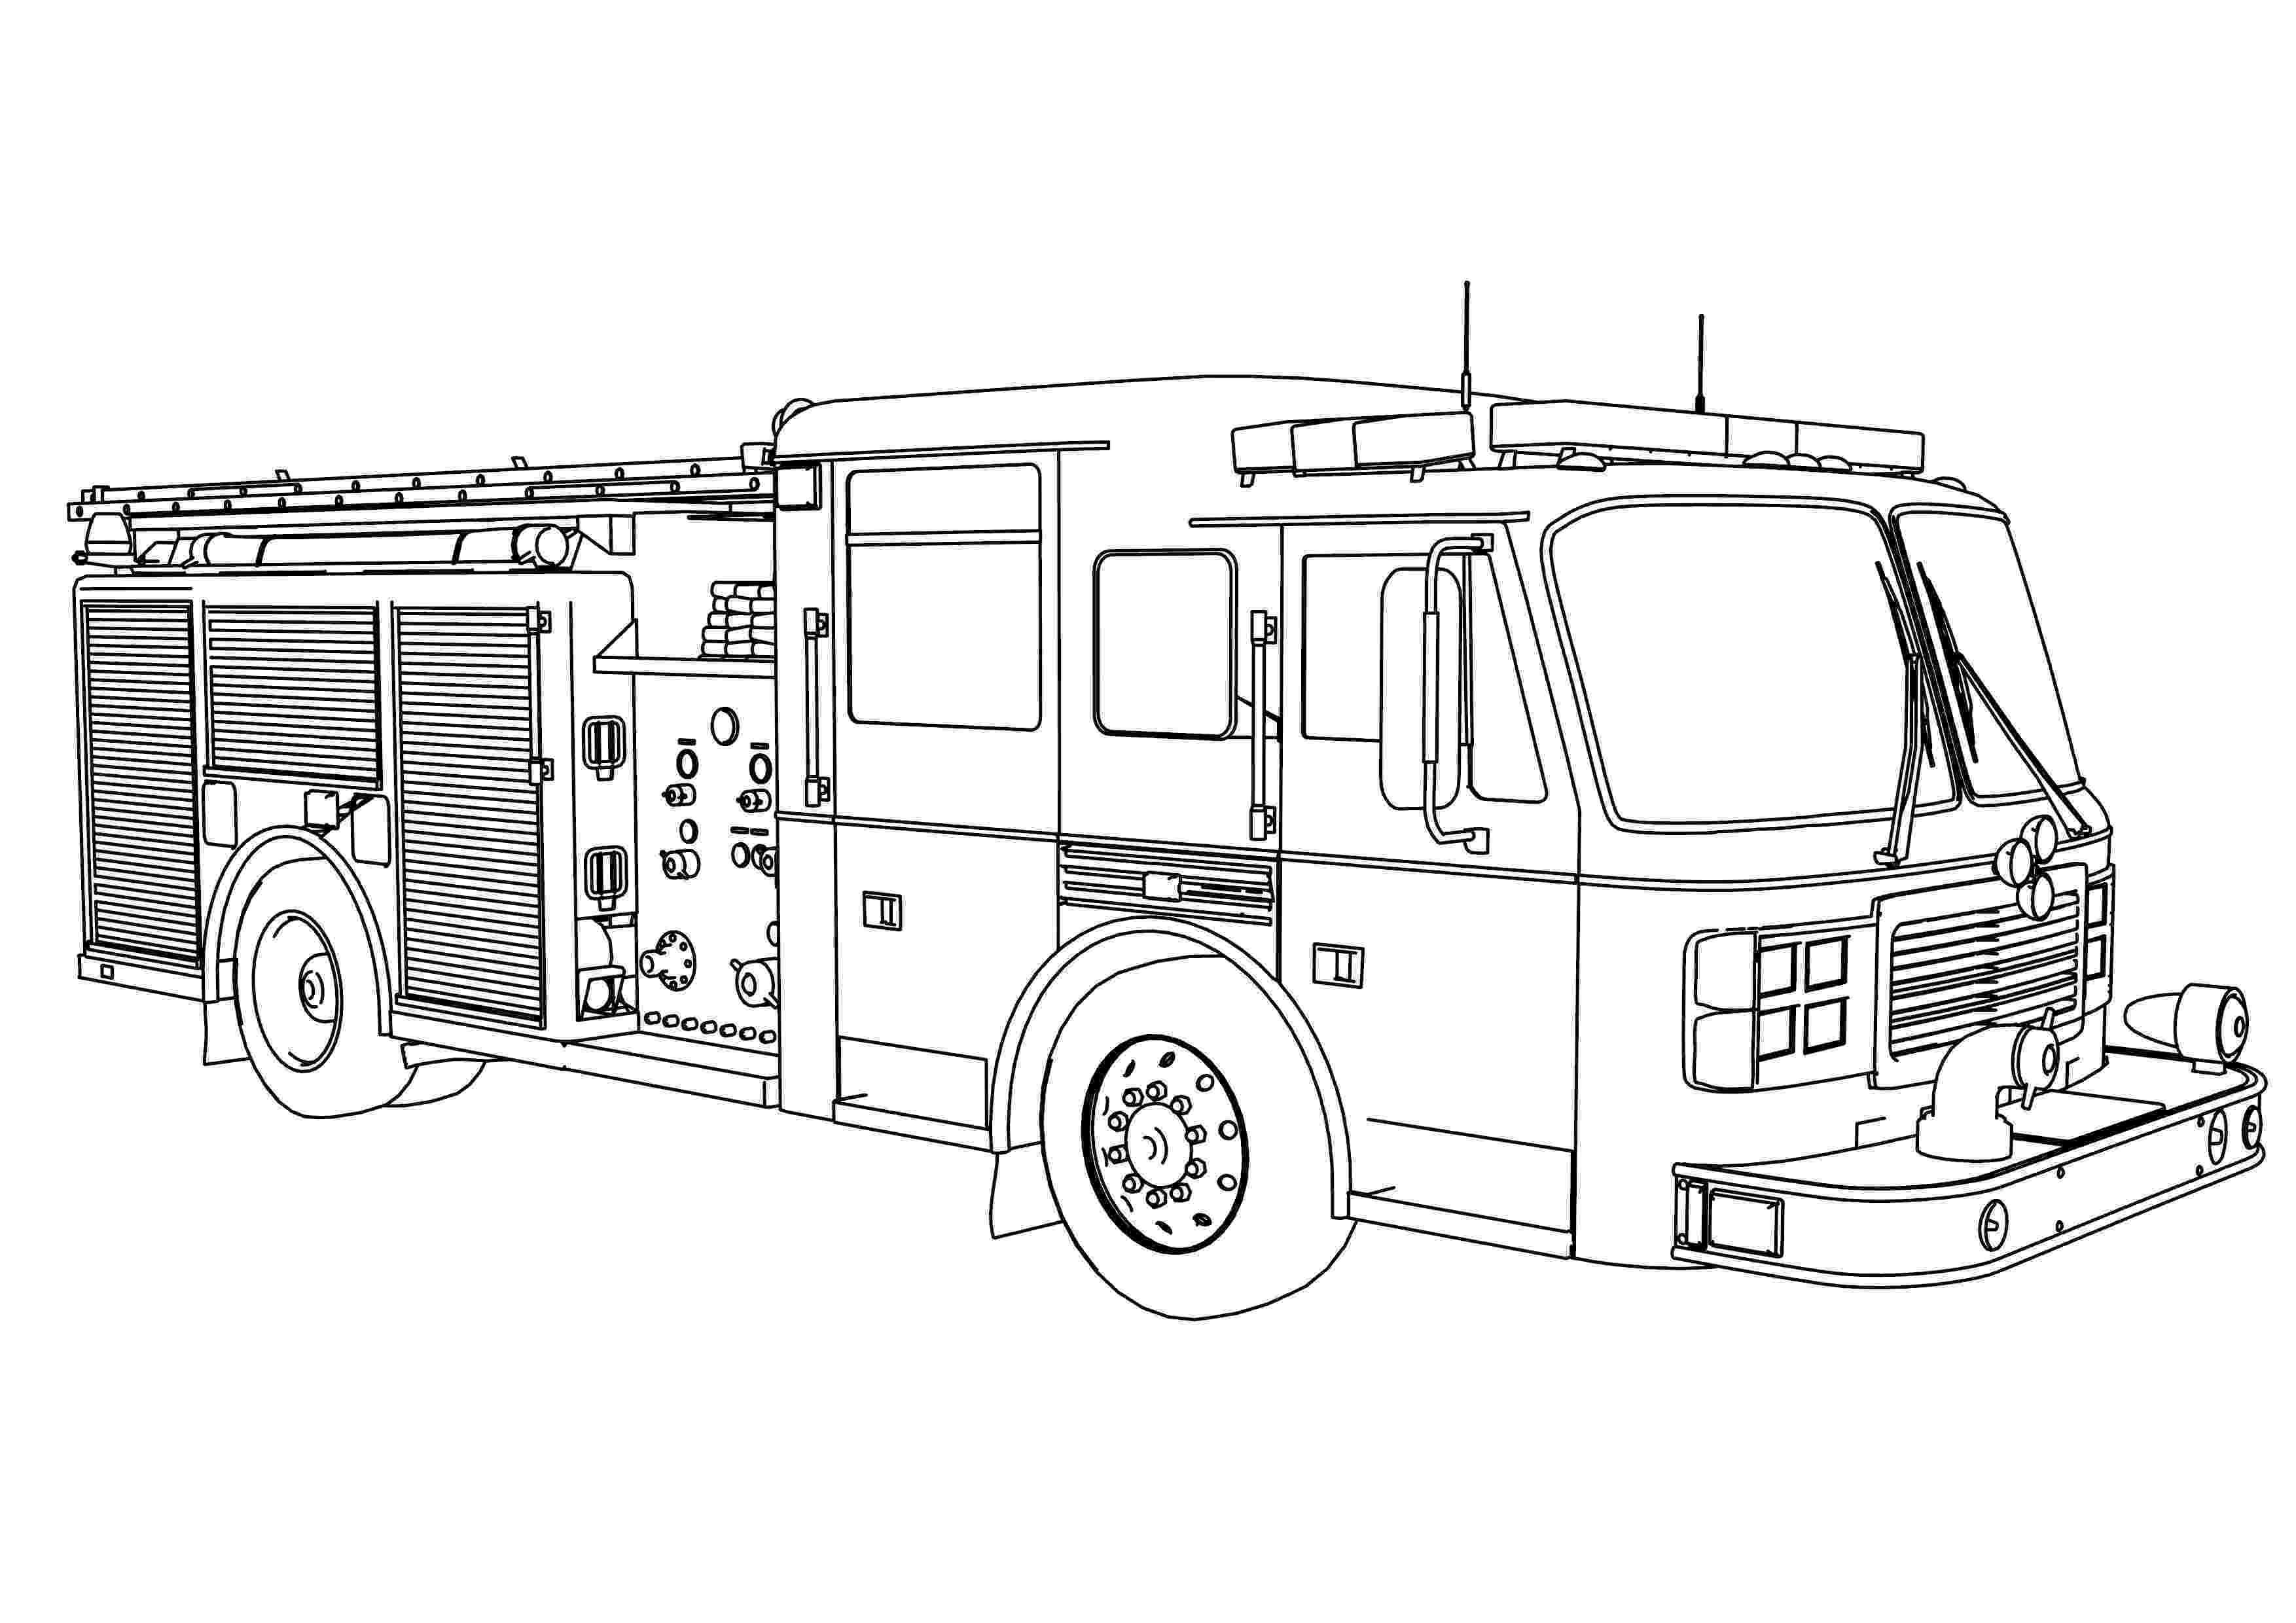 fire truck pictures coloring pages fire truck with ladder coloring page free printable fire coloring truck pictures pages